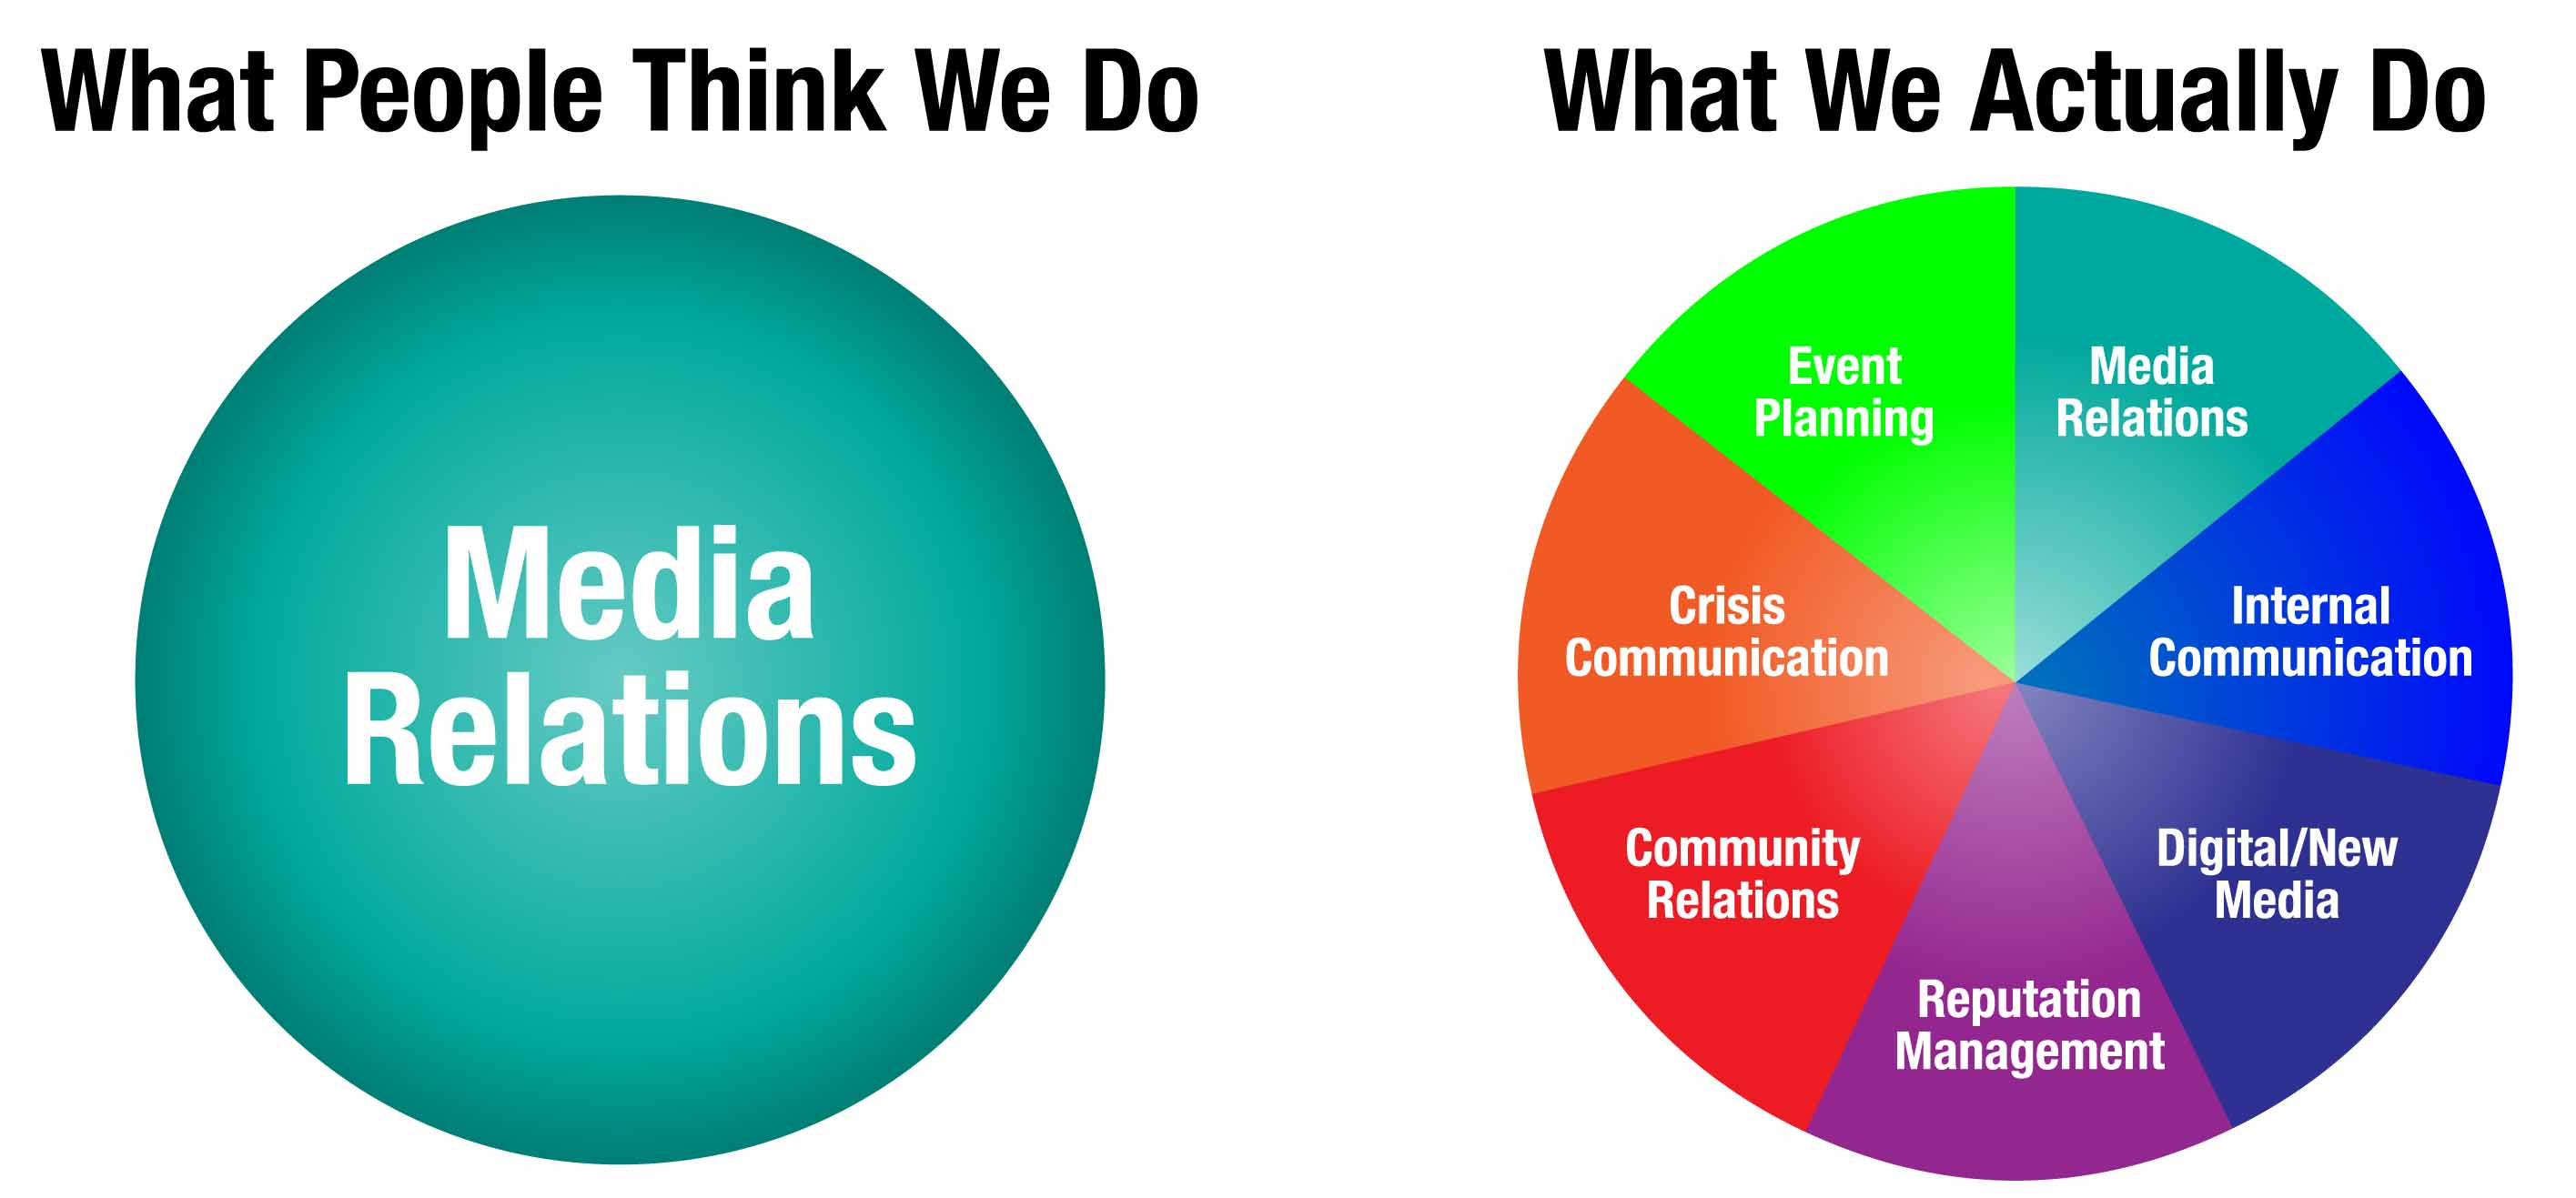 Public Relations - Perception vs Reality Infographic